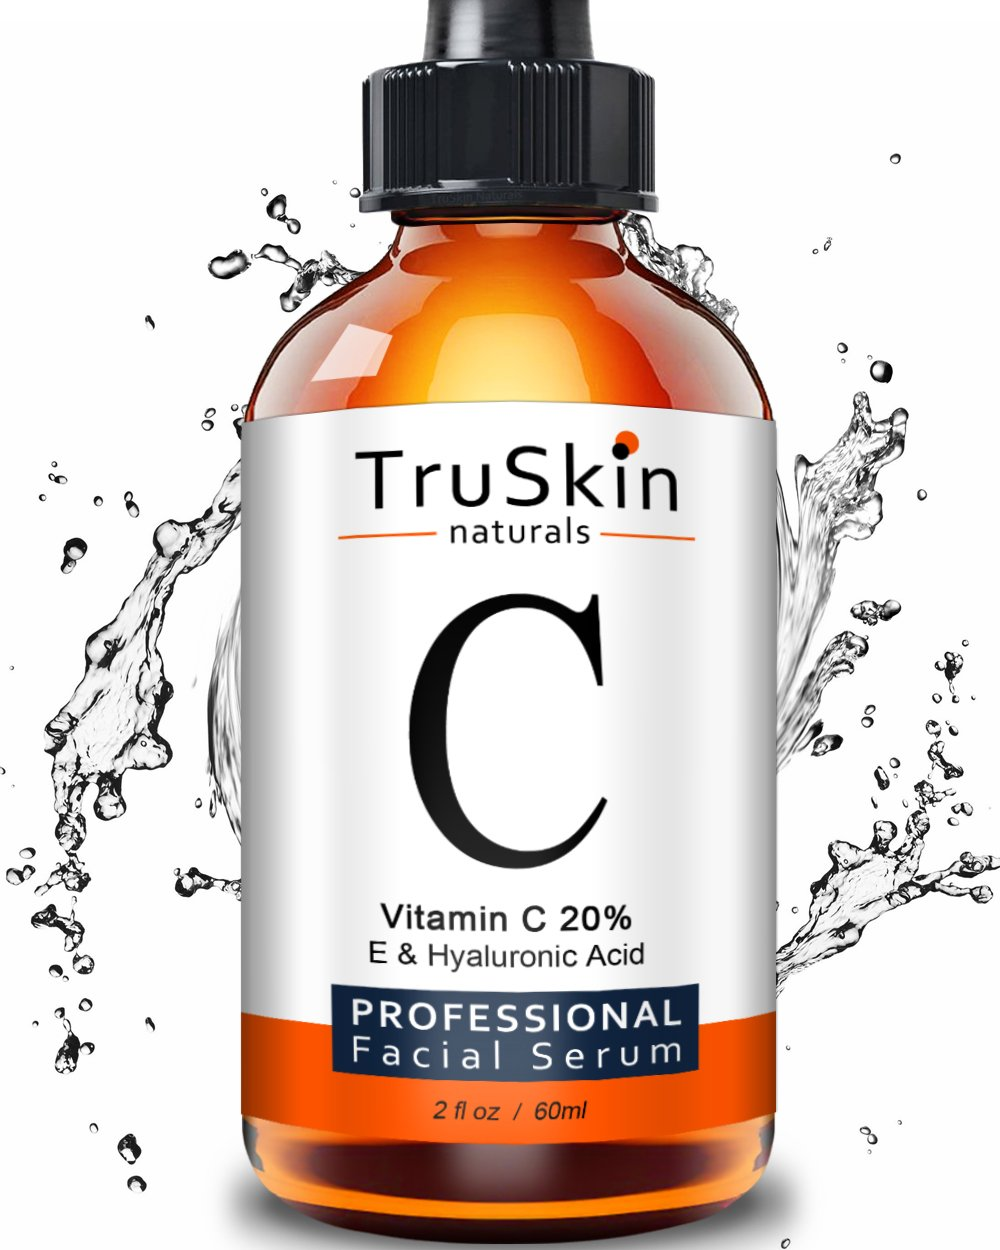 The BEST ORGANIC Vitamin C Serum - [BIG 2-OZ Bottle] - Hyaluronic Acid, 20% C + E Professional Topical Facial Skin Care to Repair Sun Damage, Fade Age Spots, Dark Circles, Wrinkles & Fine Lines -2 oz TruSkin Naturals